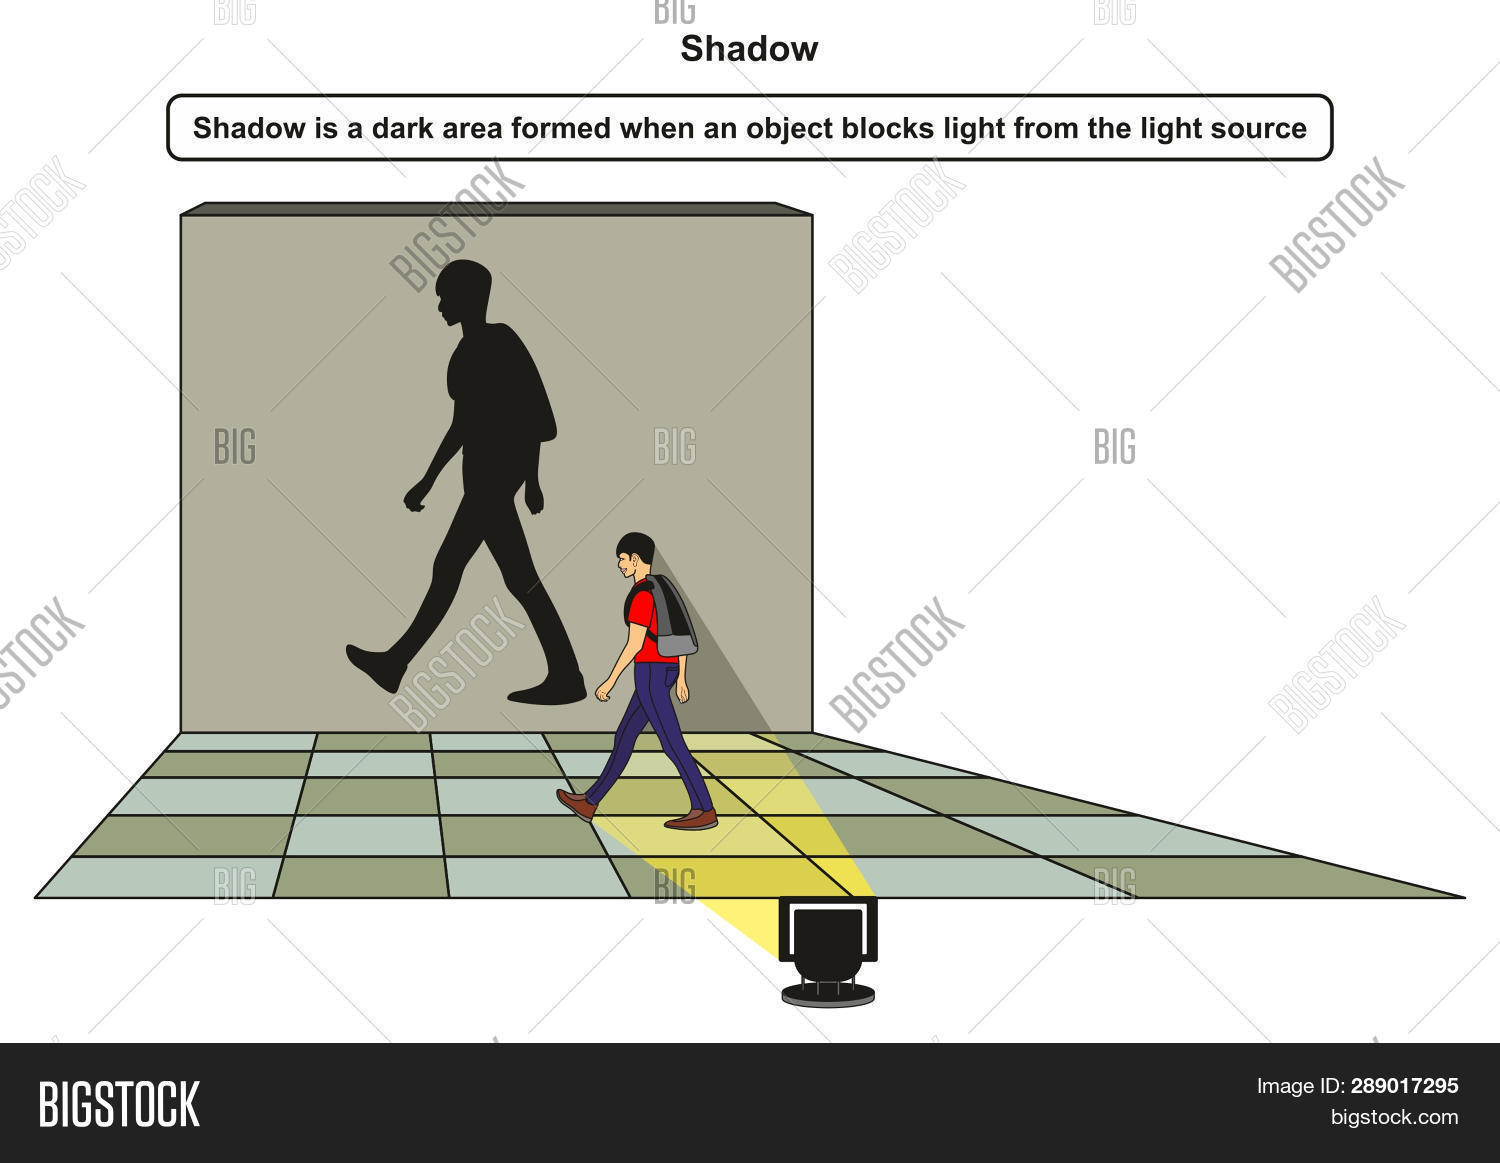 hight resolution of shadow infographic diagram with example of boy blocking light from the light source and shadow forms